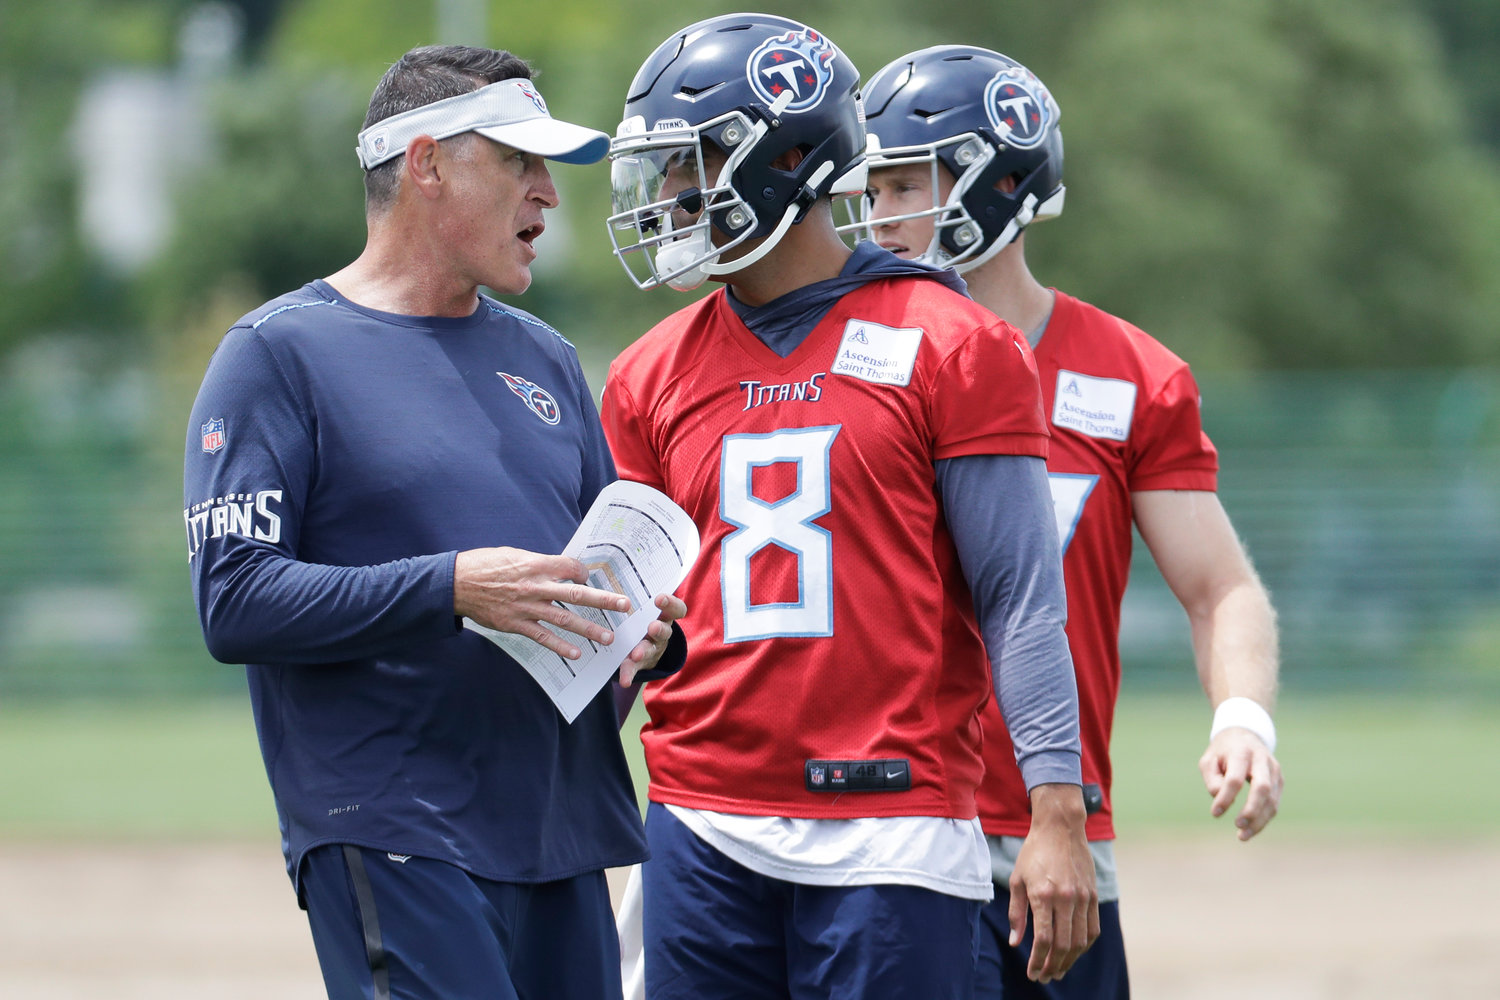 d7e189de Minicamp starts with Titans working, no contract holdouts | Herald ...